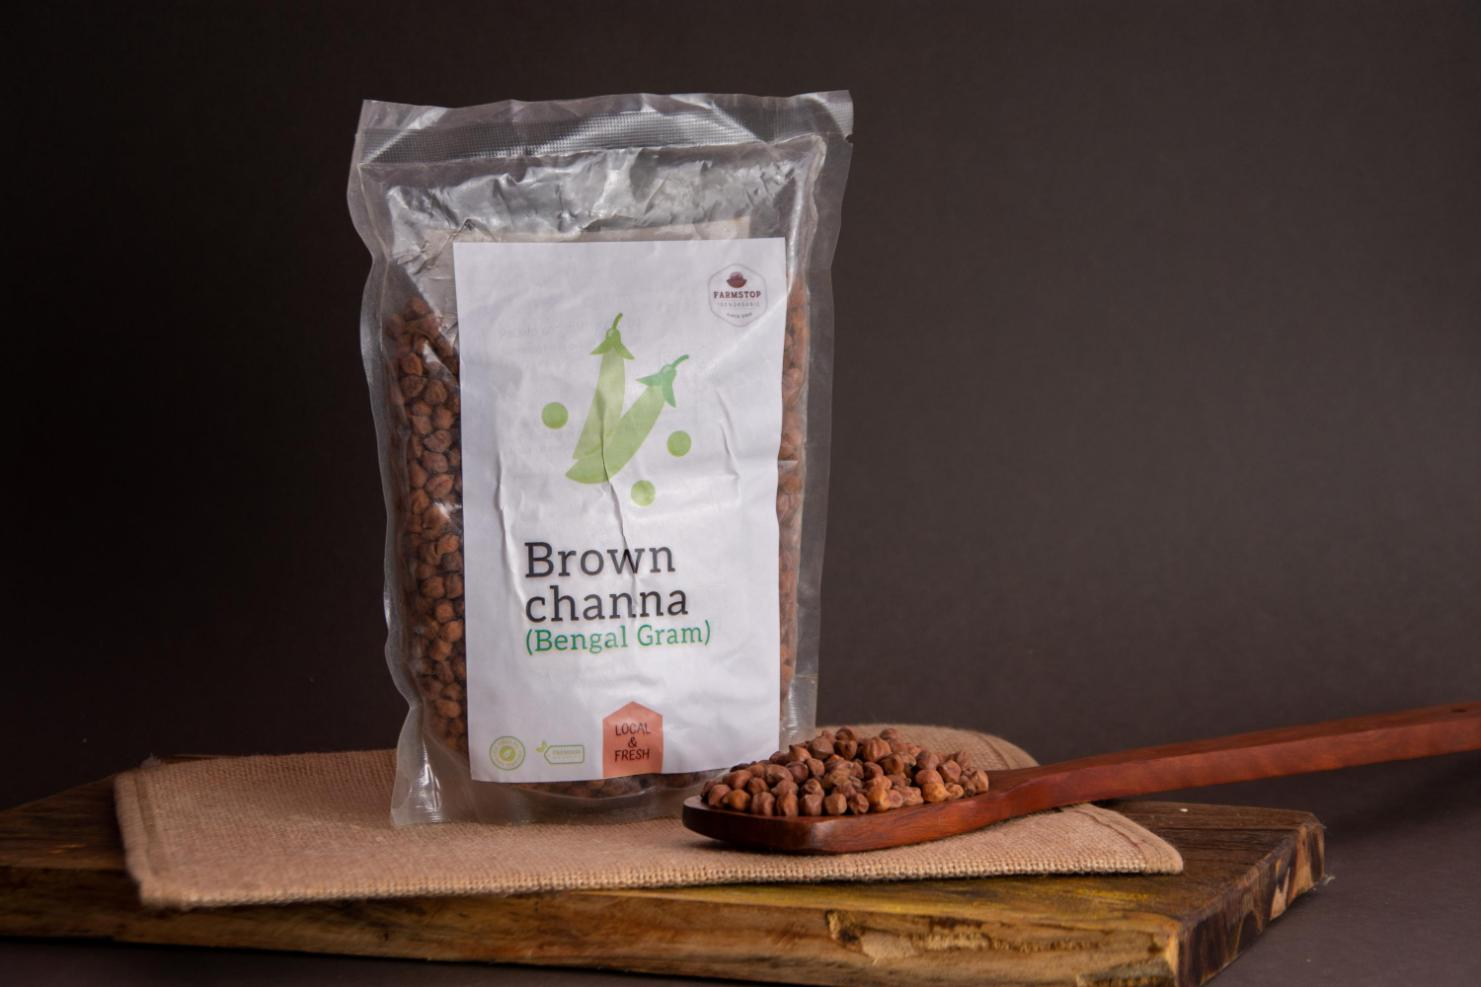 Brown Channa helpsdecreasecholesterol levels in the body,